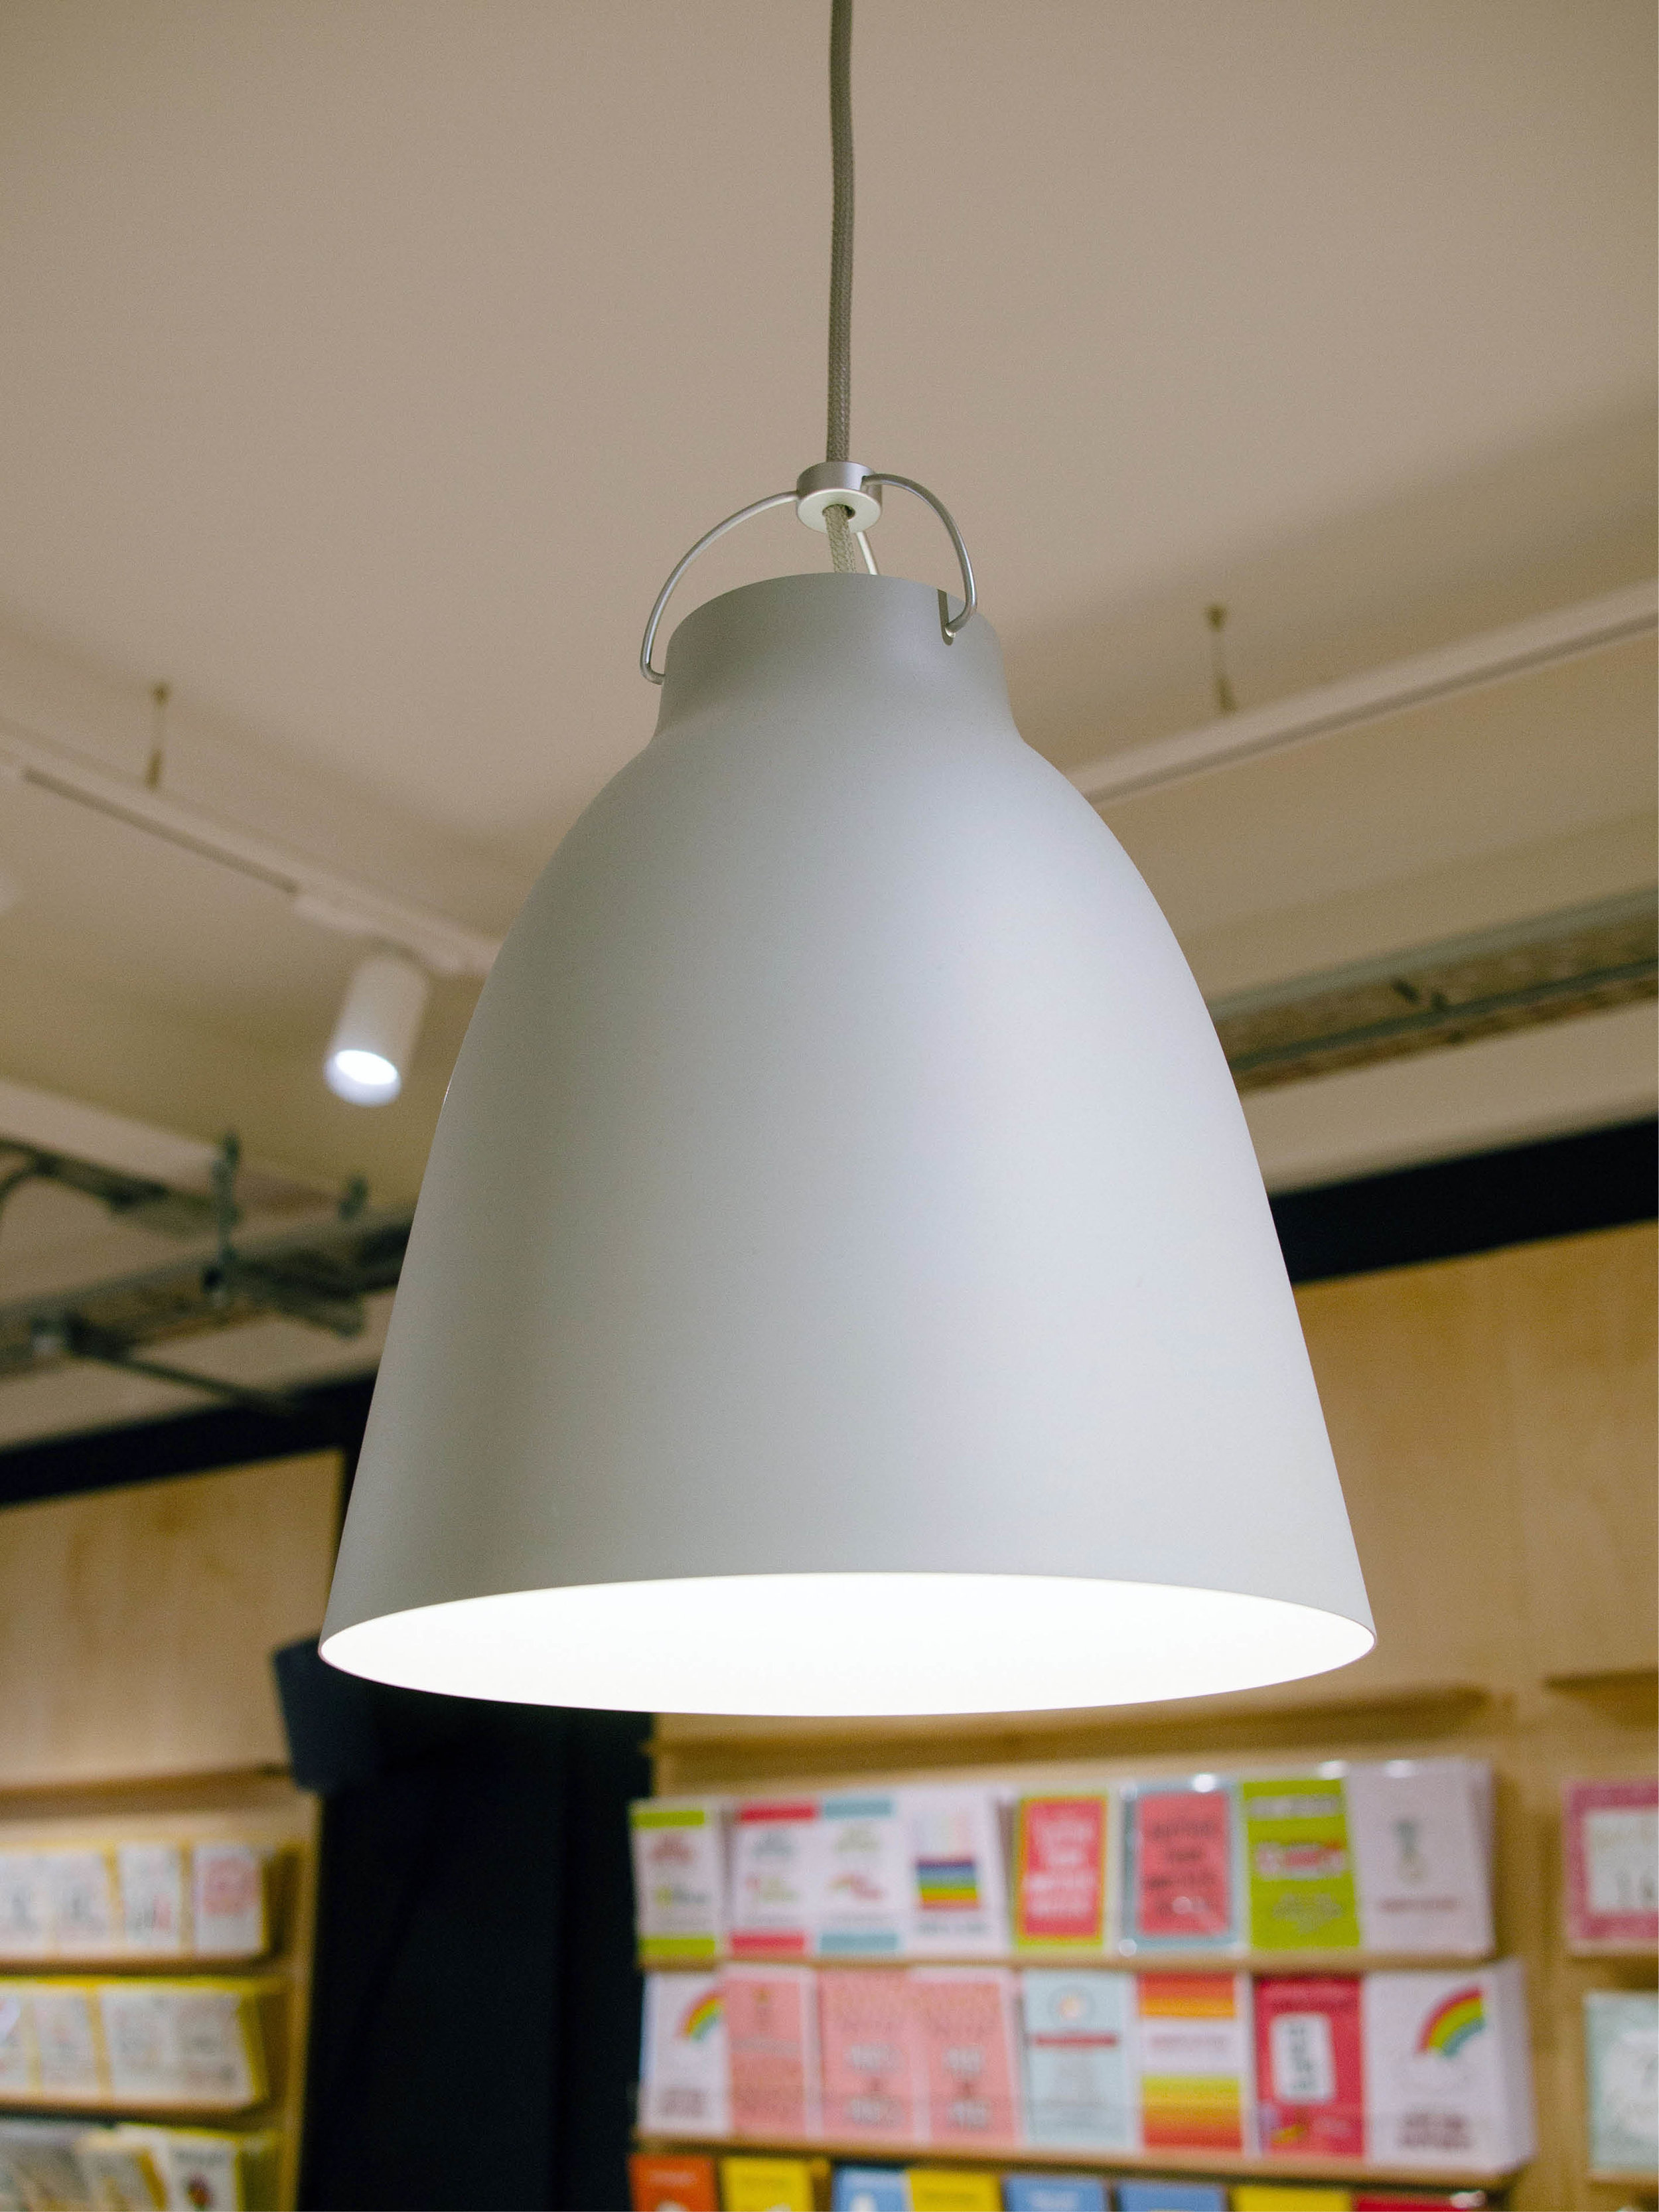 retail design utility manchester store design graphics agency lighting industrial simplistic